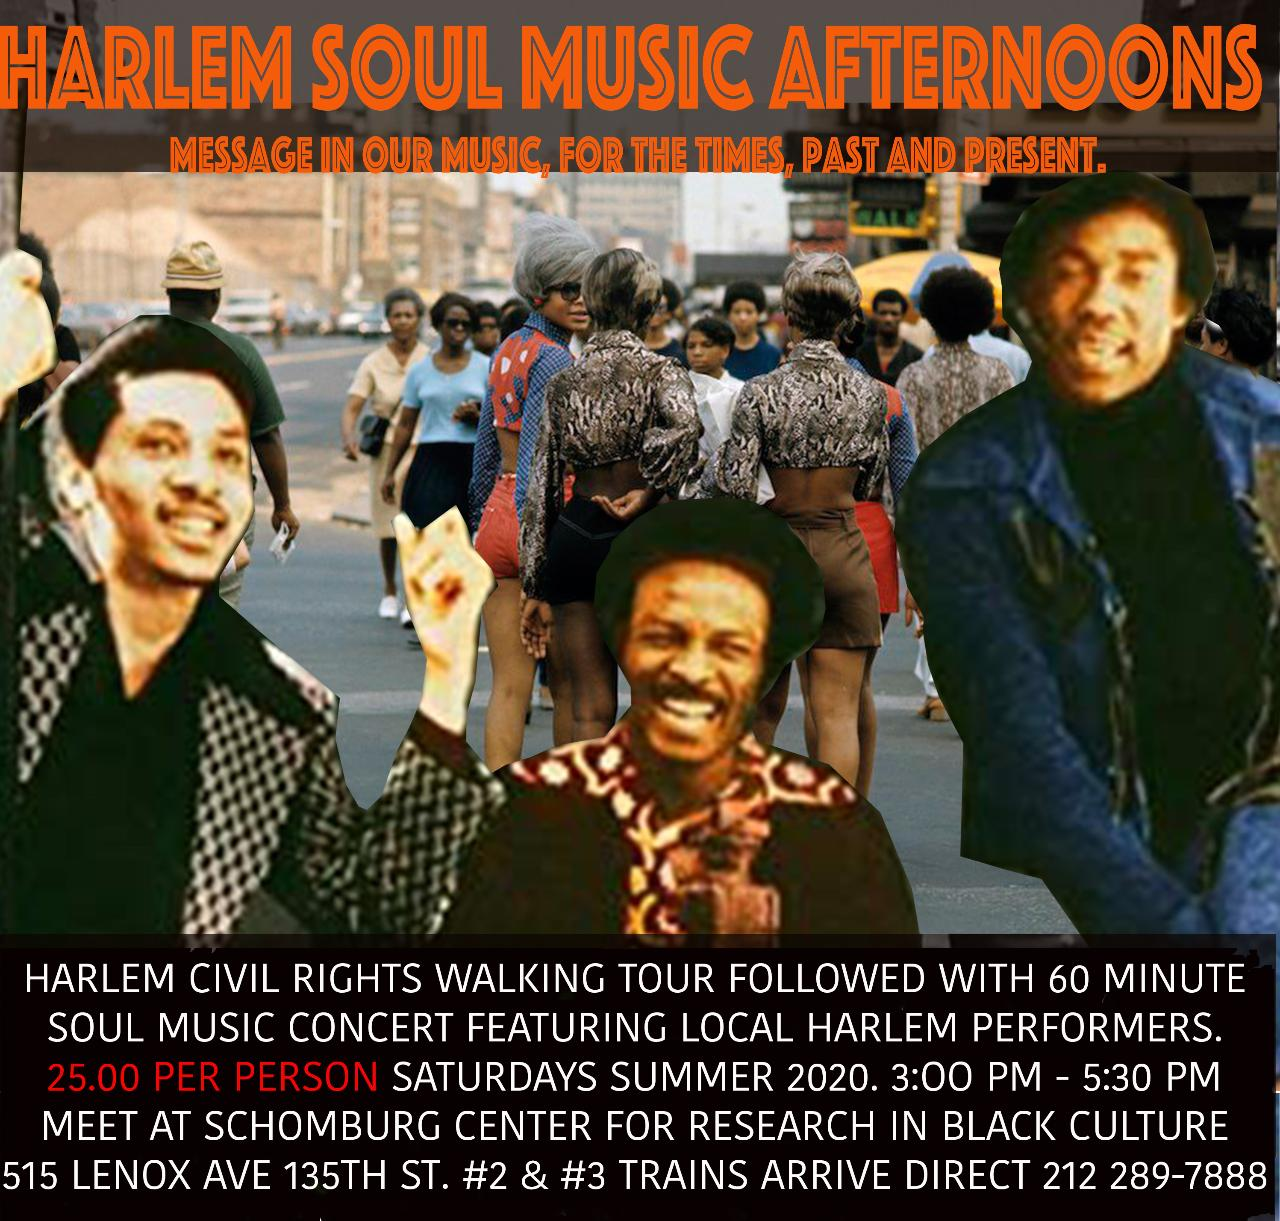 """Harlem Soul Music Afternoons - Message in Our Music Experience"""